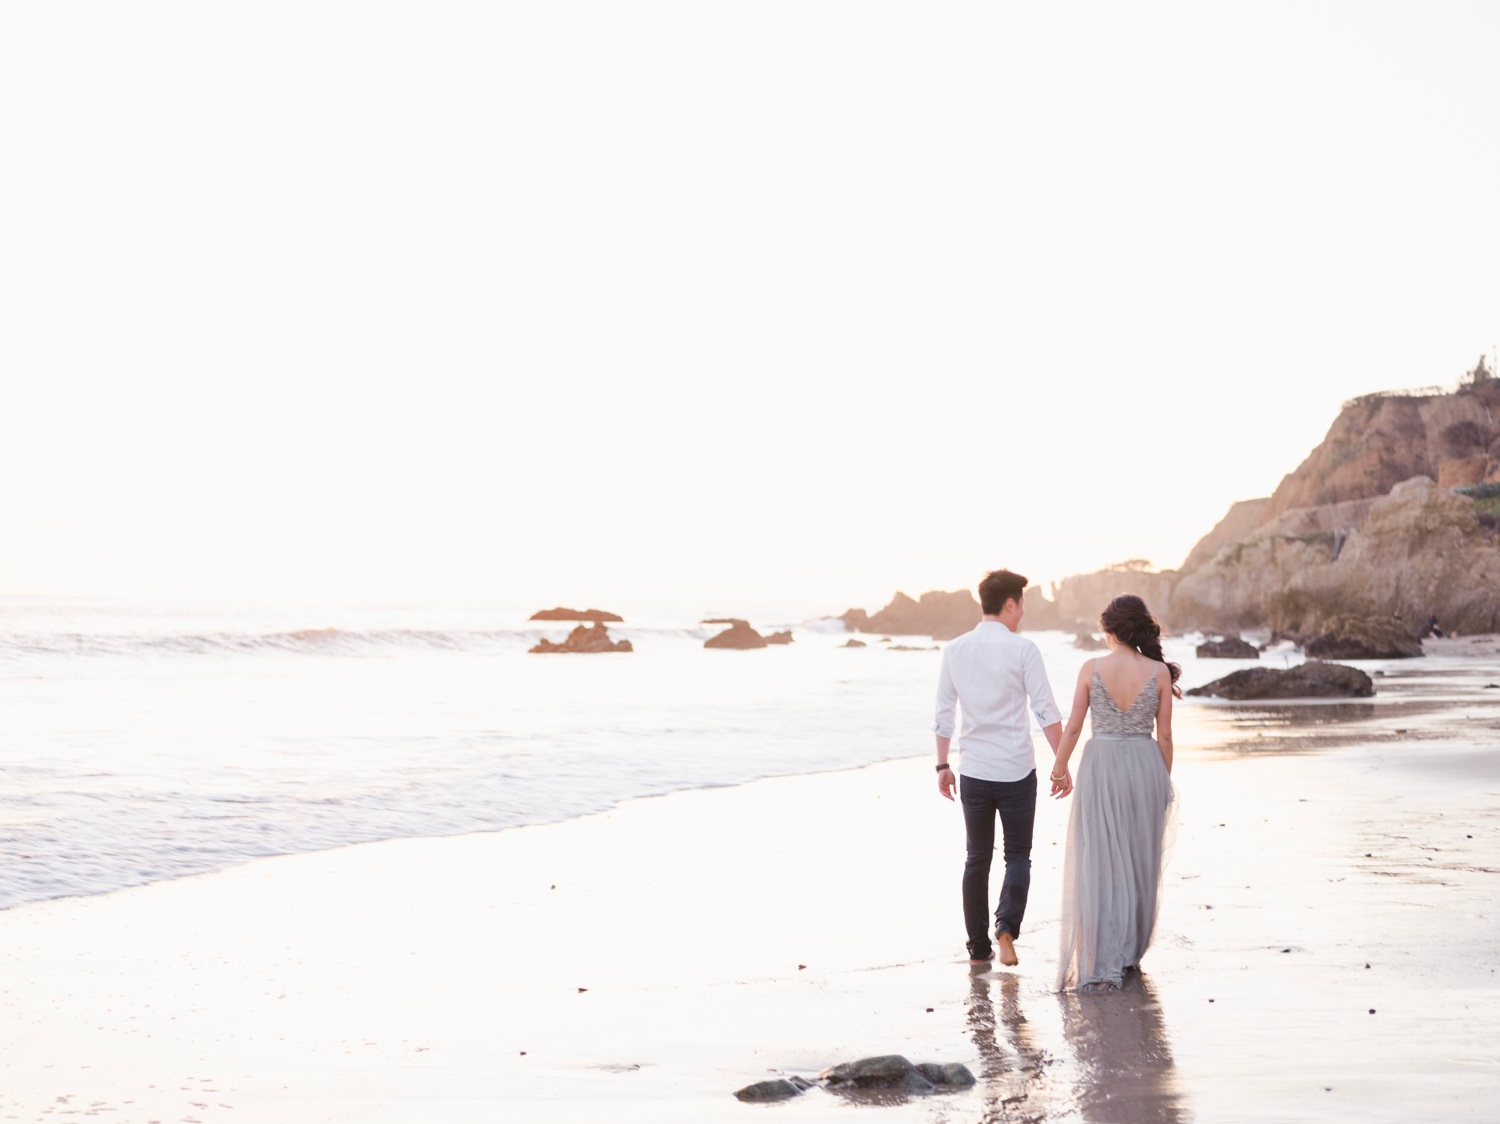 Couple in formal attire walking down the beach holding hands